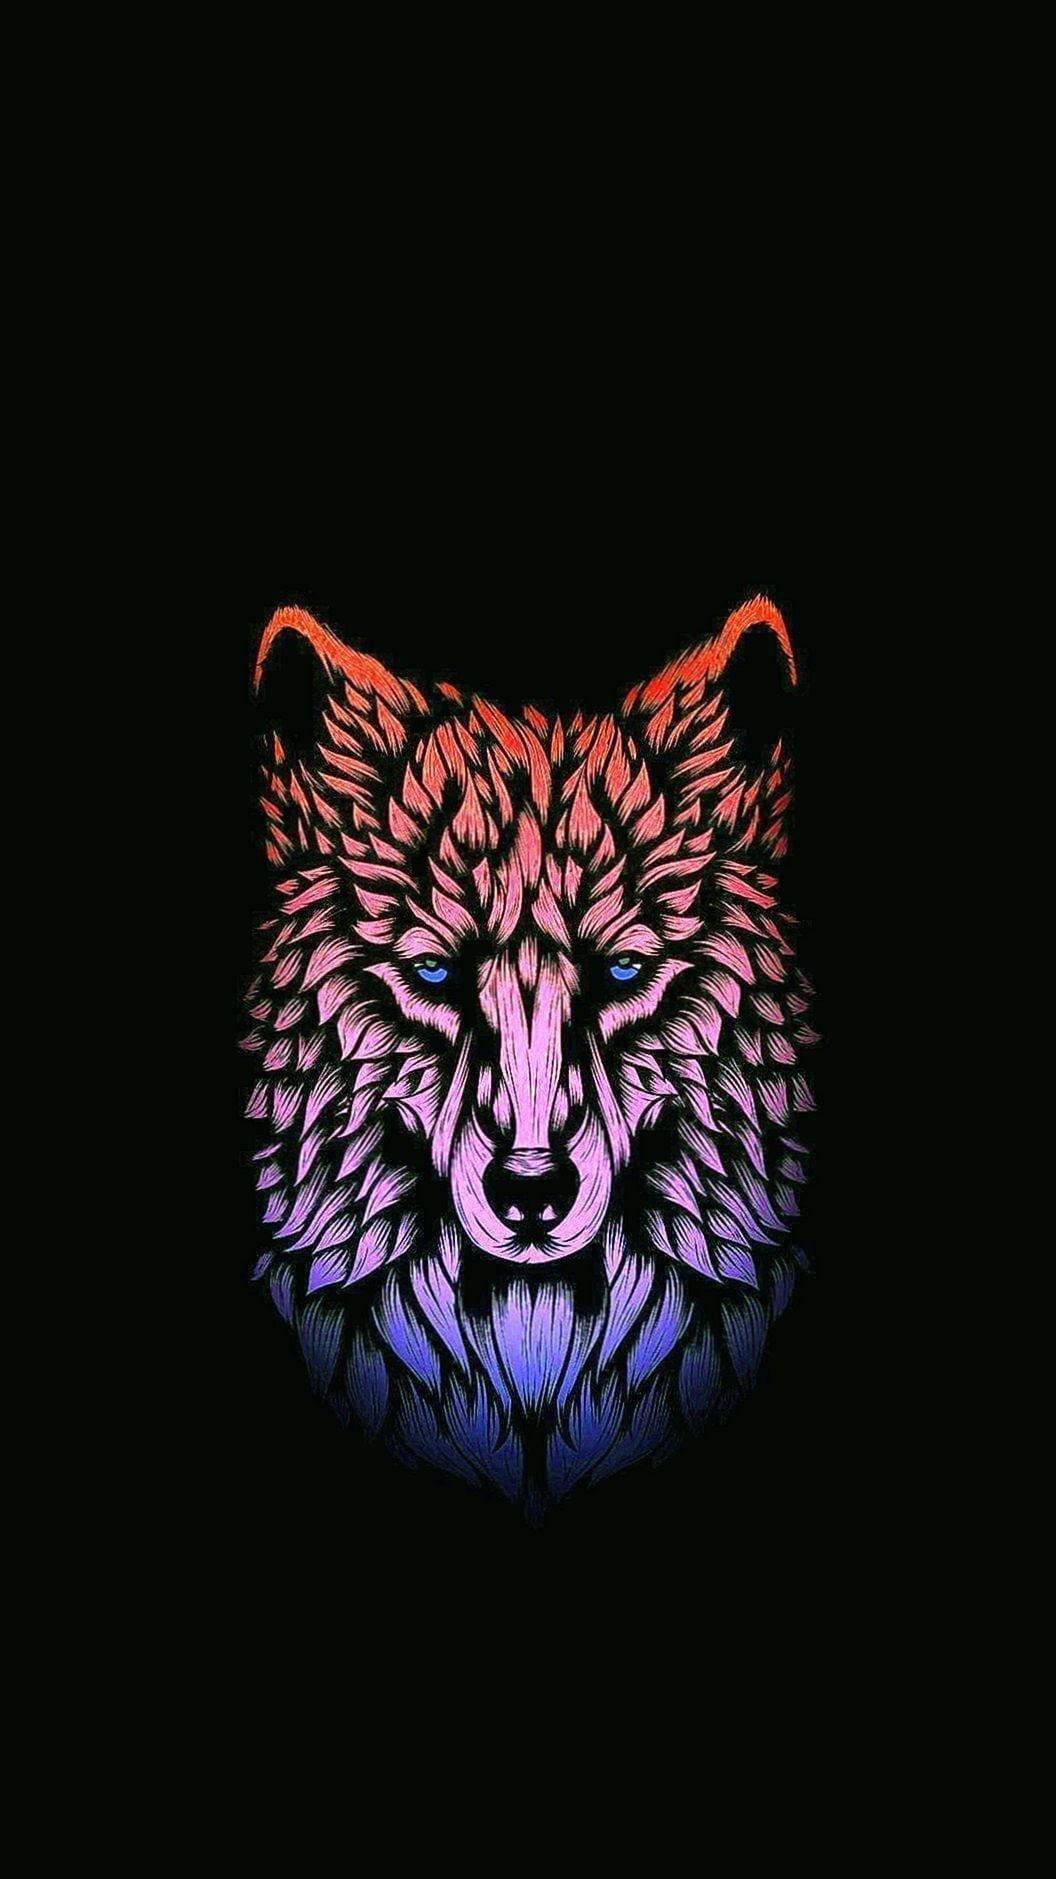 Amoled Wolf Wallpapers Wolf Wallpapers Pro In 2020 Wolf Wallpaper 4k Wallpaper For Mobile Ice Wolf Wallpaper